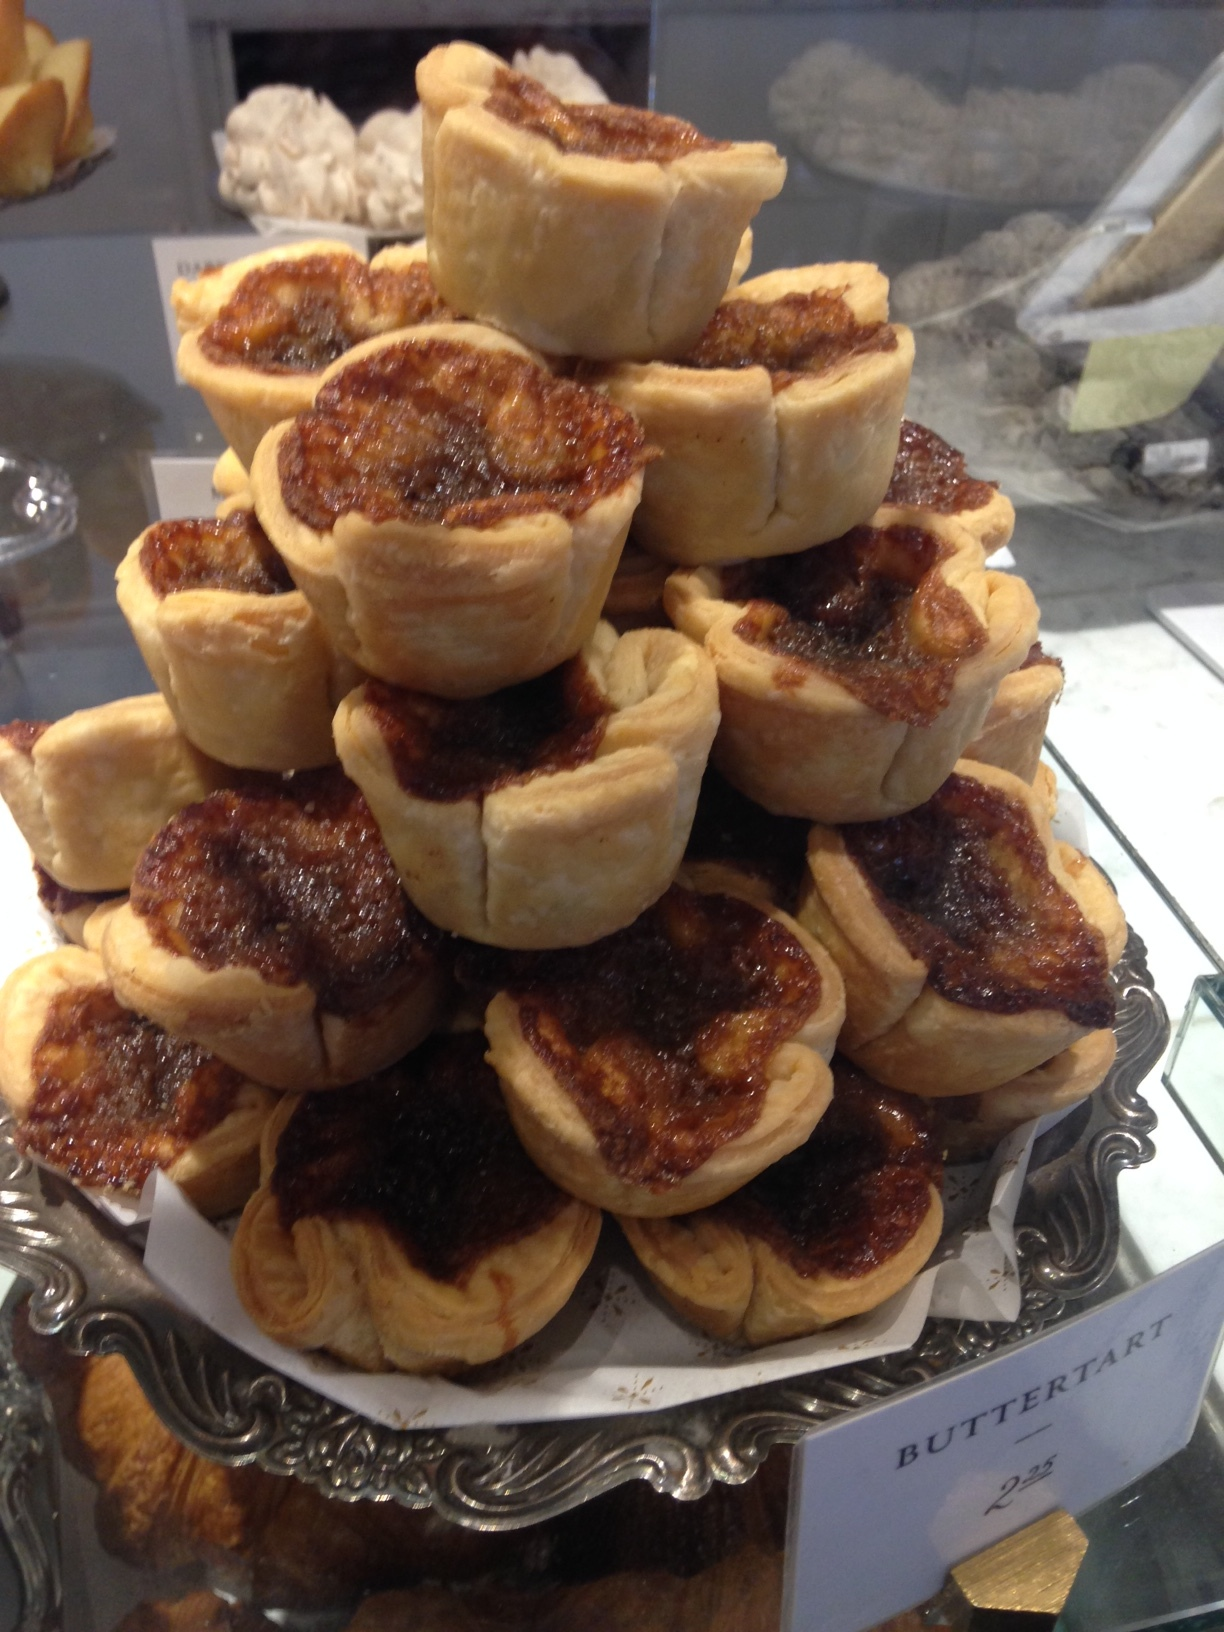 Sample the butter tarts at Edmonton's Duchess Bake Shop at 10720 - 124th St.  Edmonton is home to several delicious bakeries. 124th St. it a fun pedestrian district.